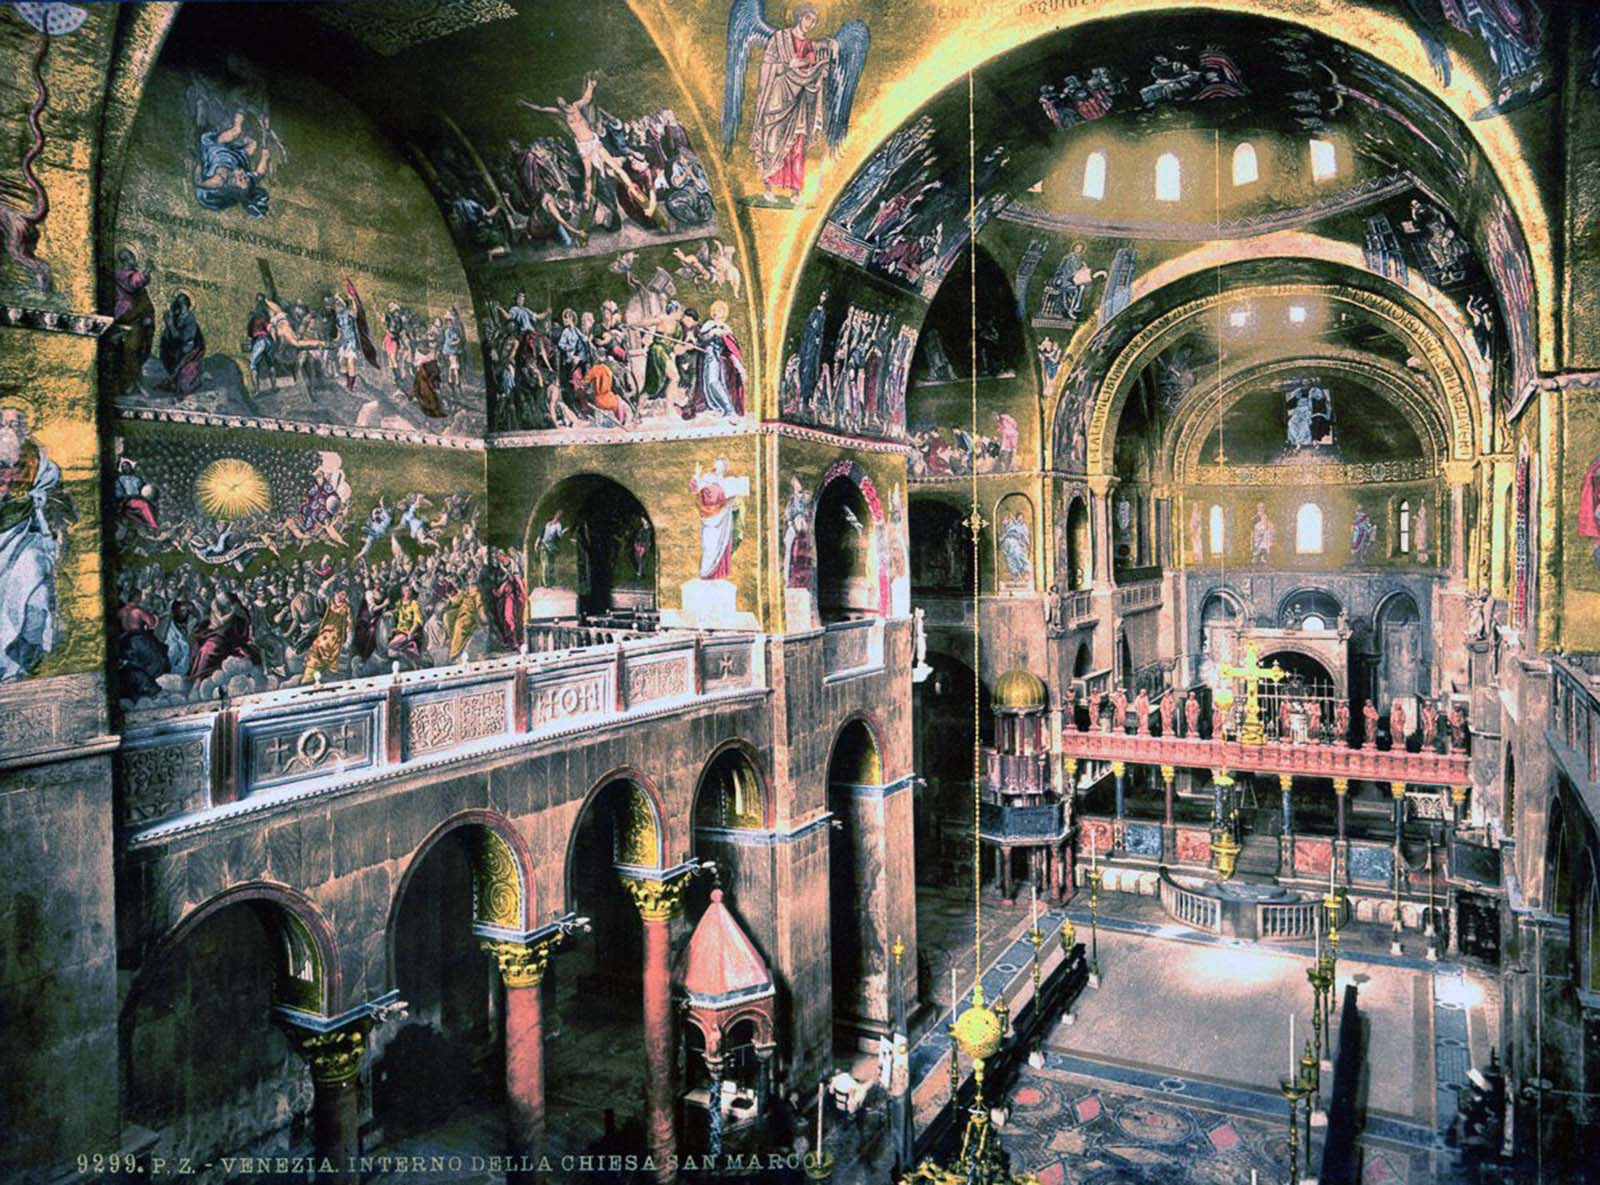 Inside St. Mark's Basilica.